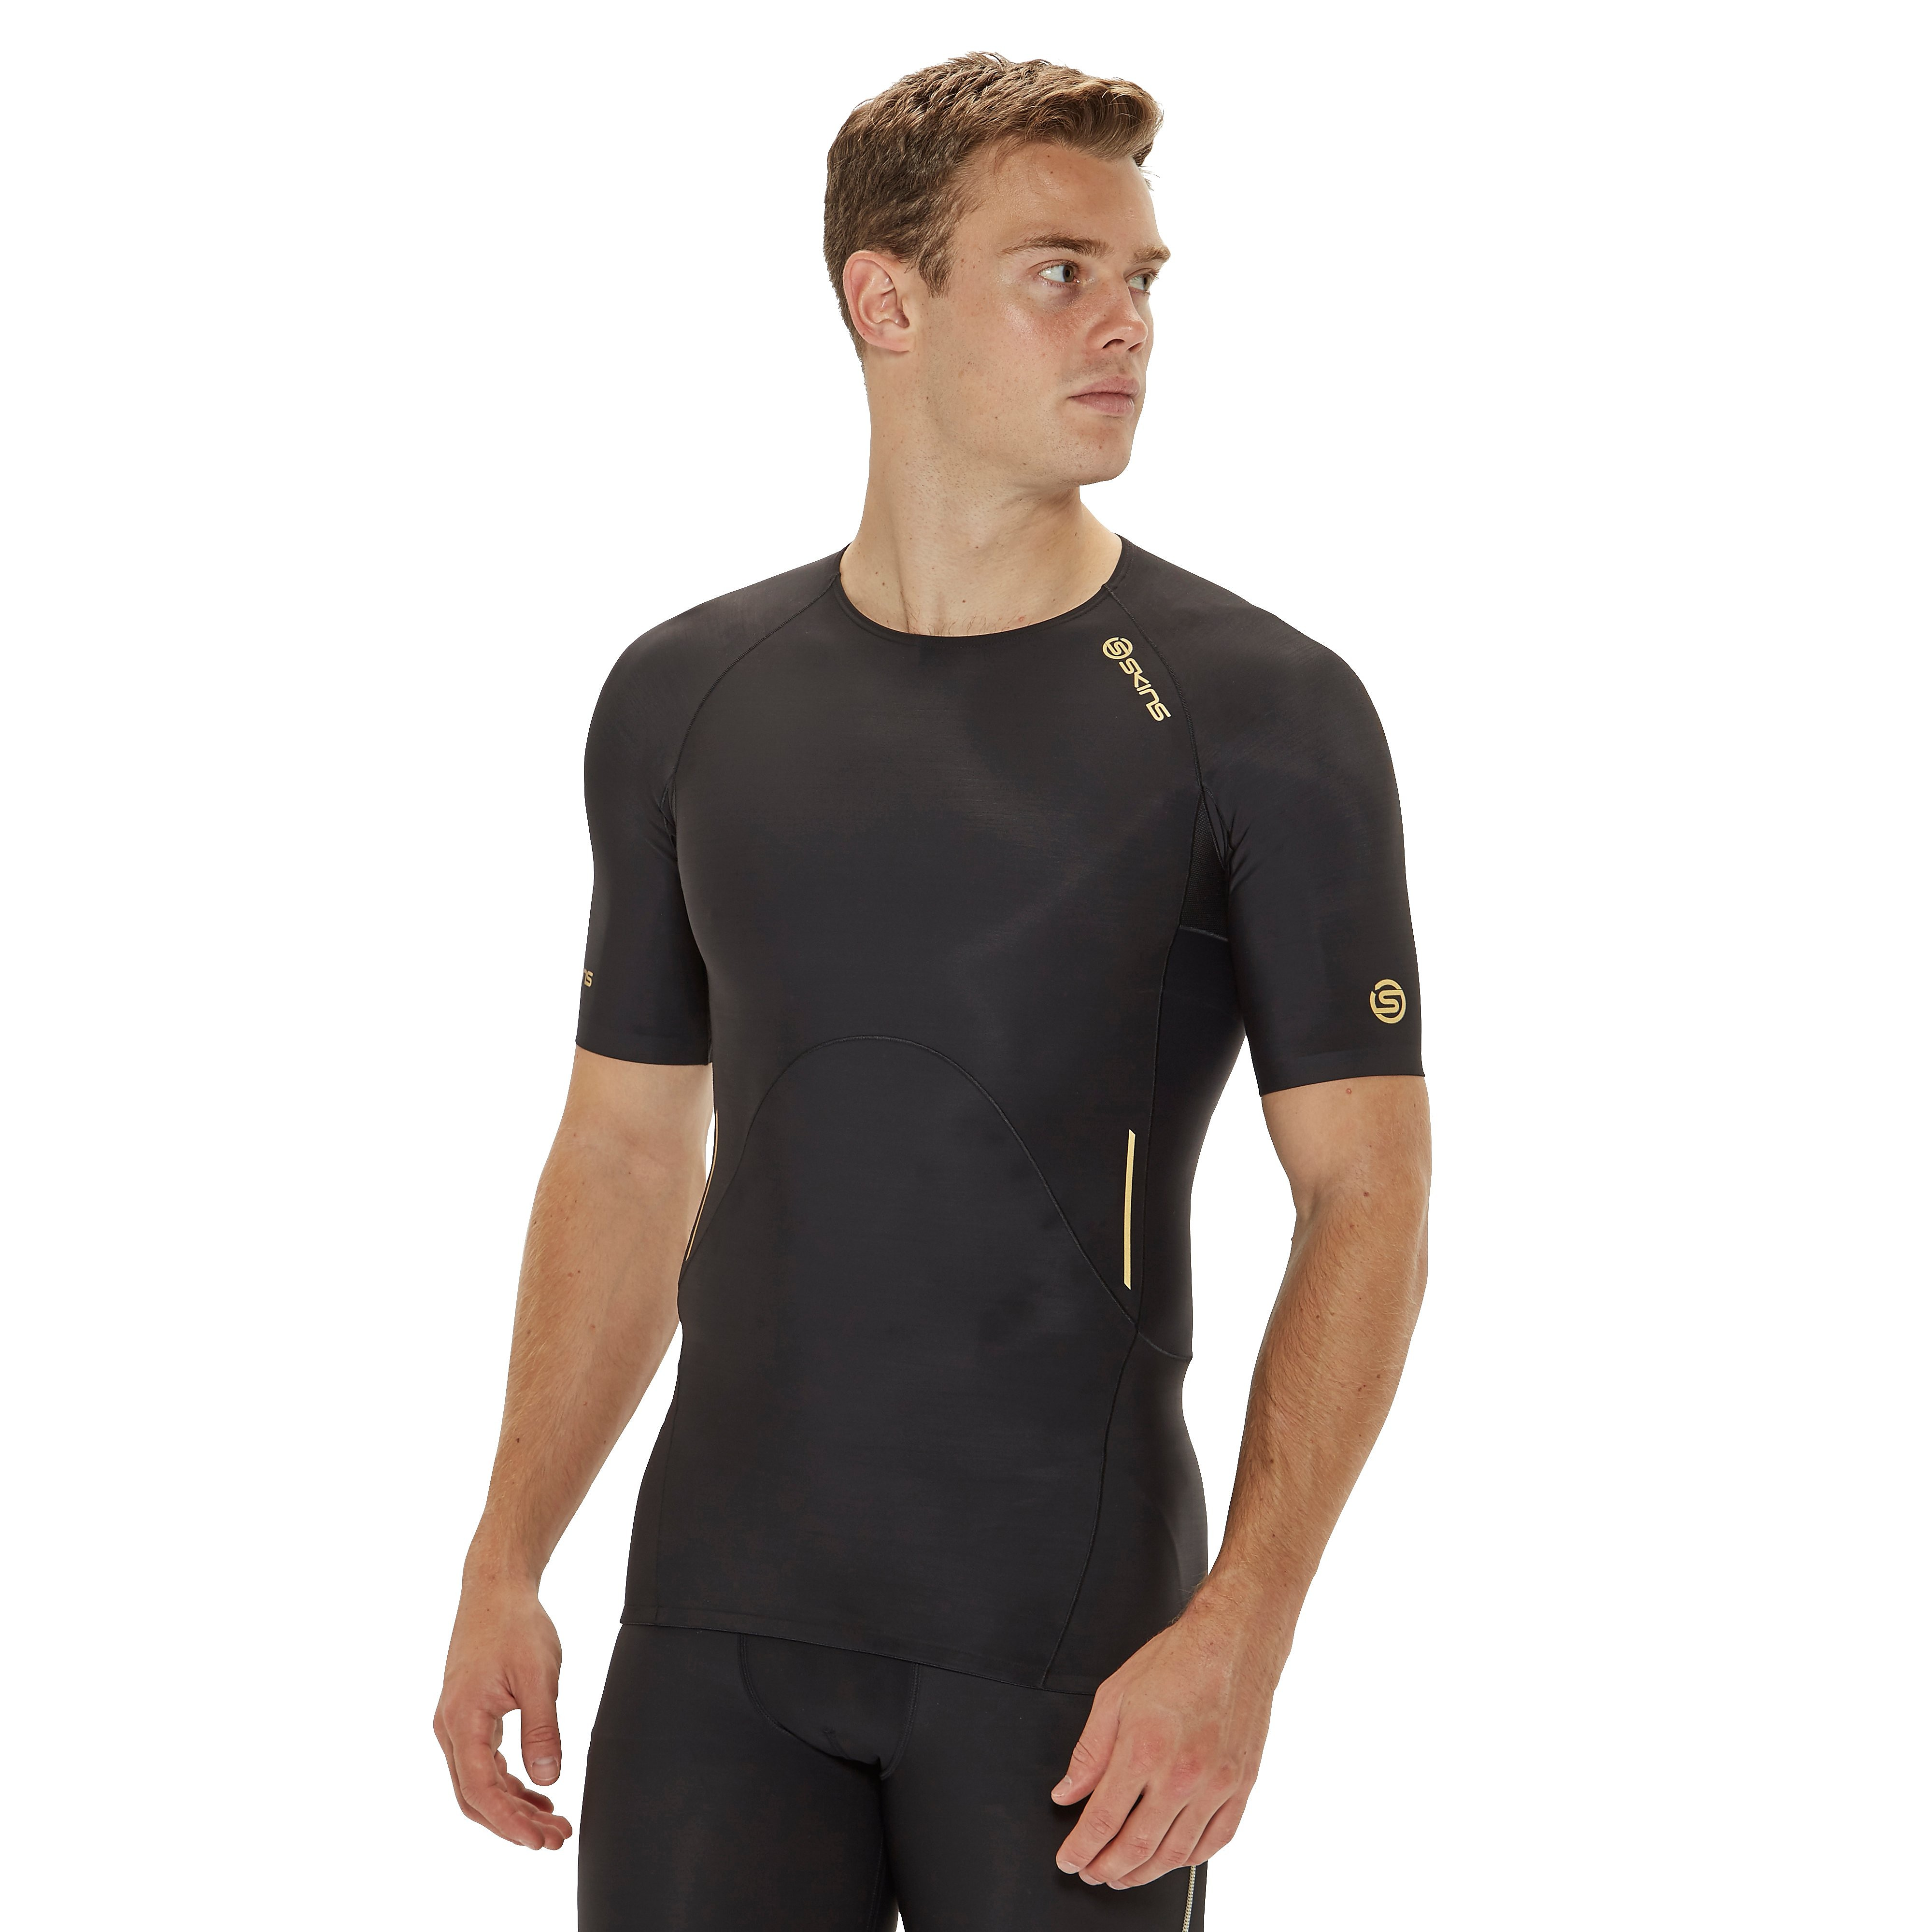 Skins A400 Men's Compression Short Sleeve Top